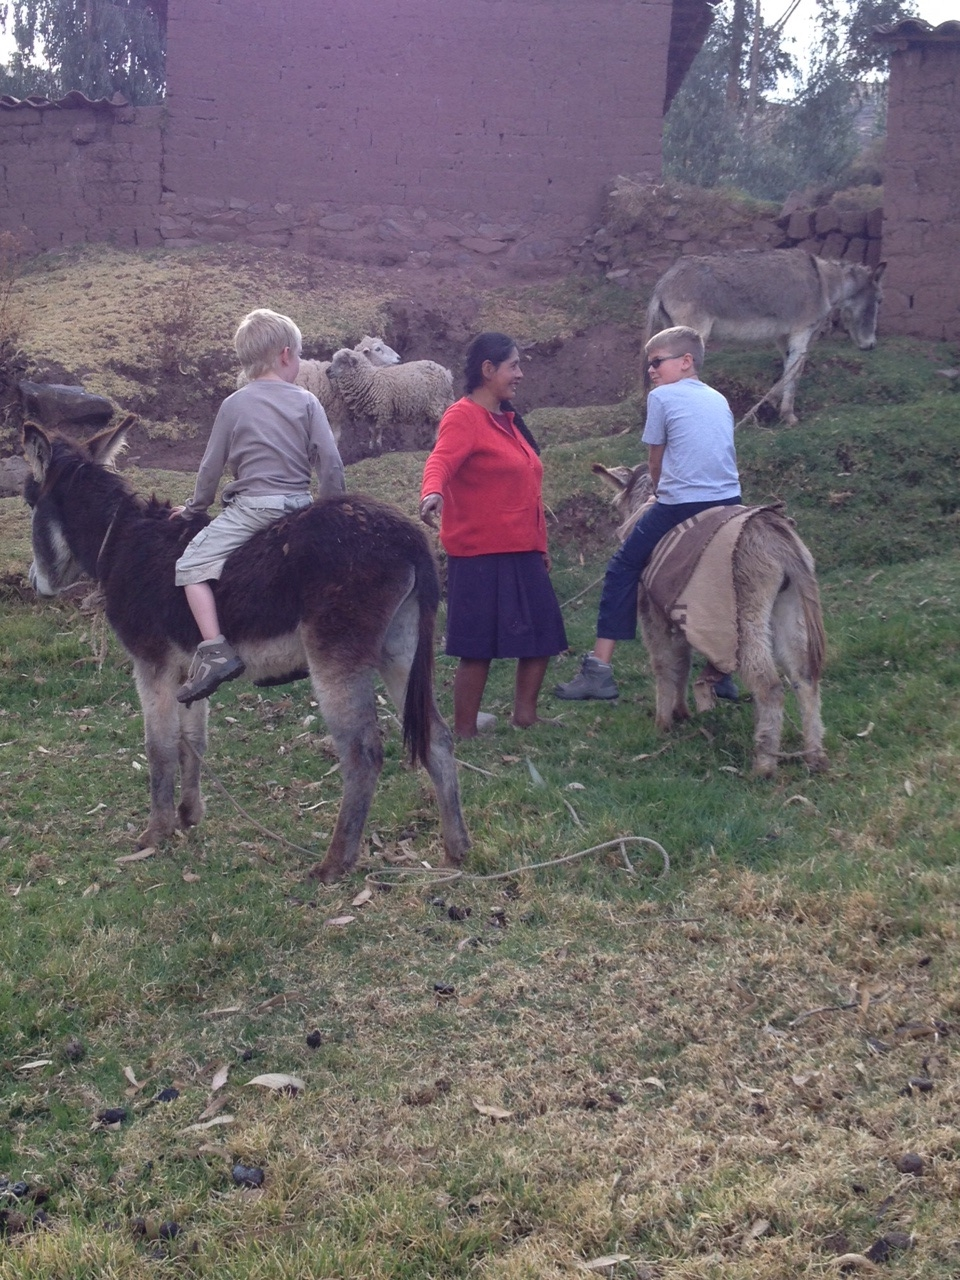 Attempting to ride the donkeys